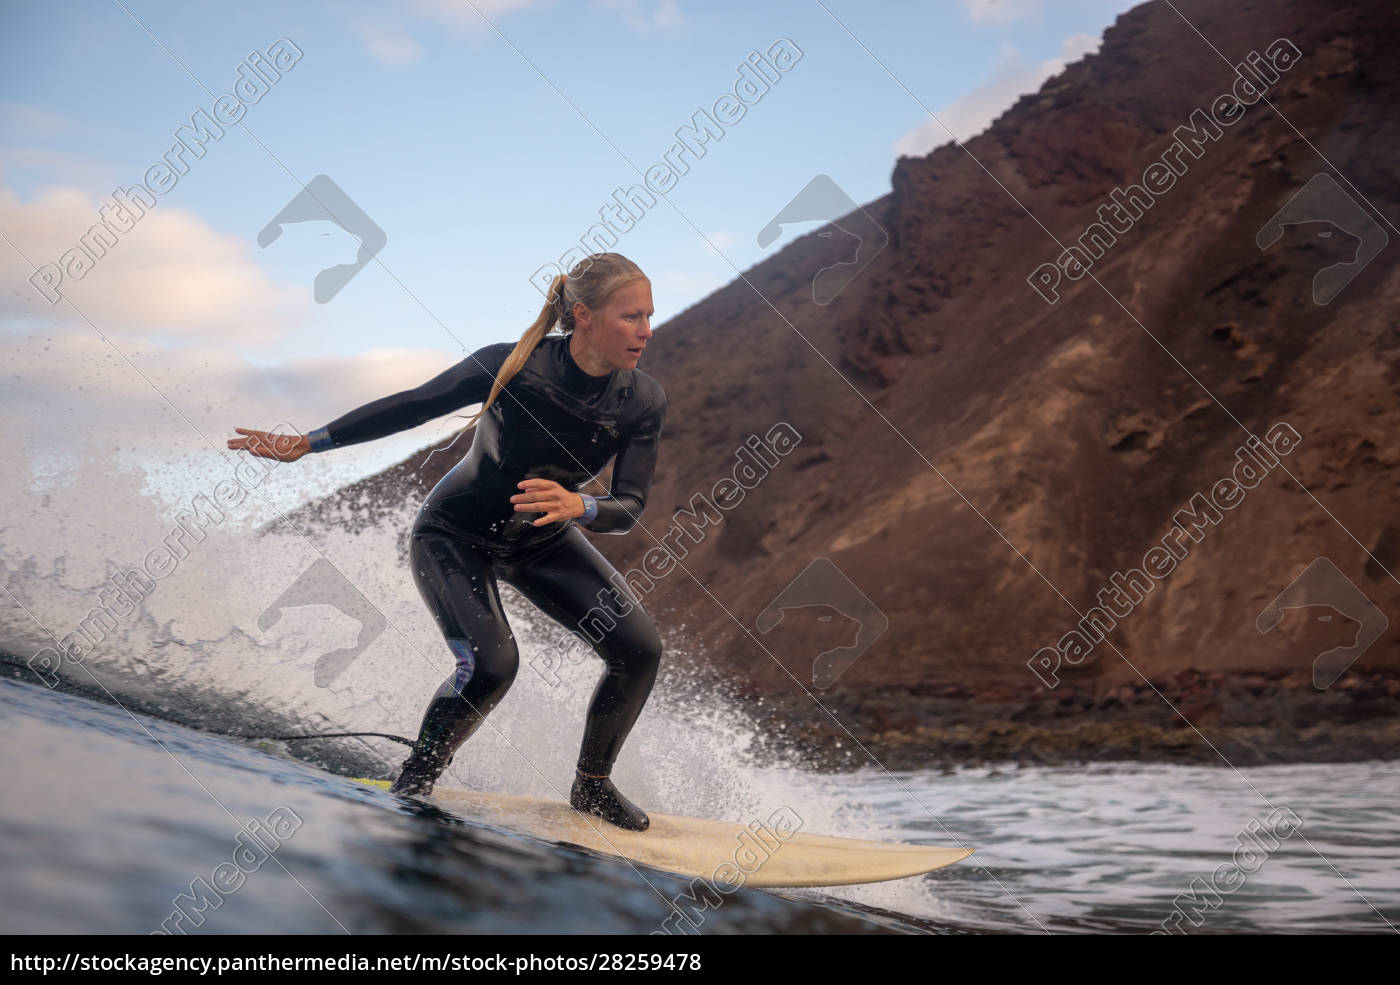 surfer, riding, waves, on, the, island - 28259478